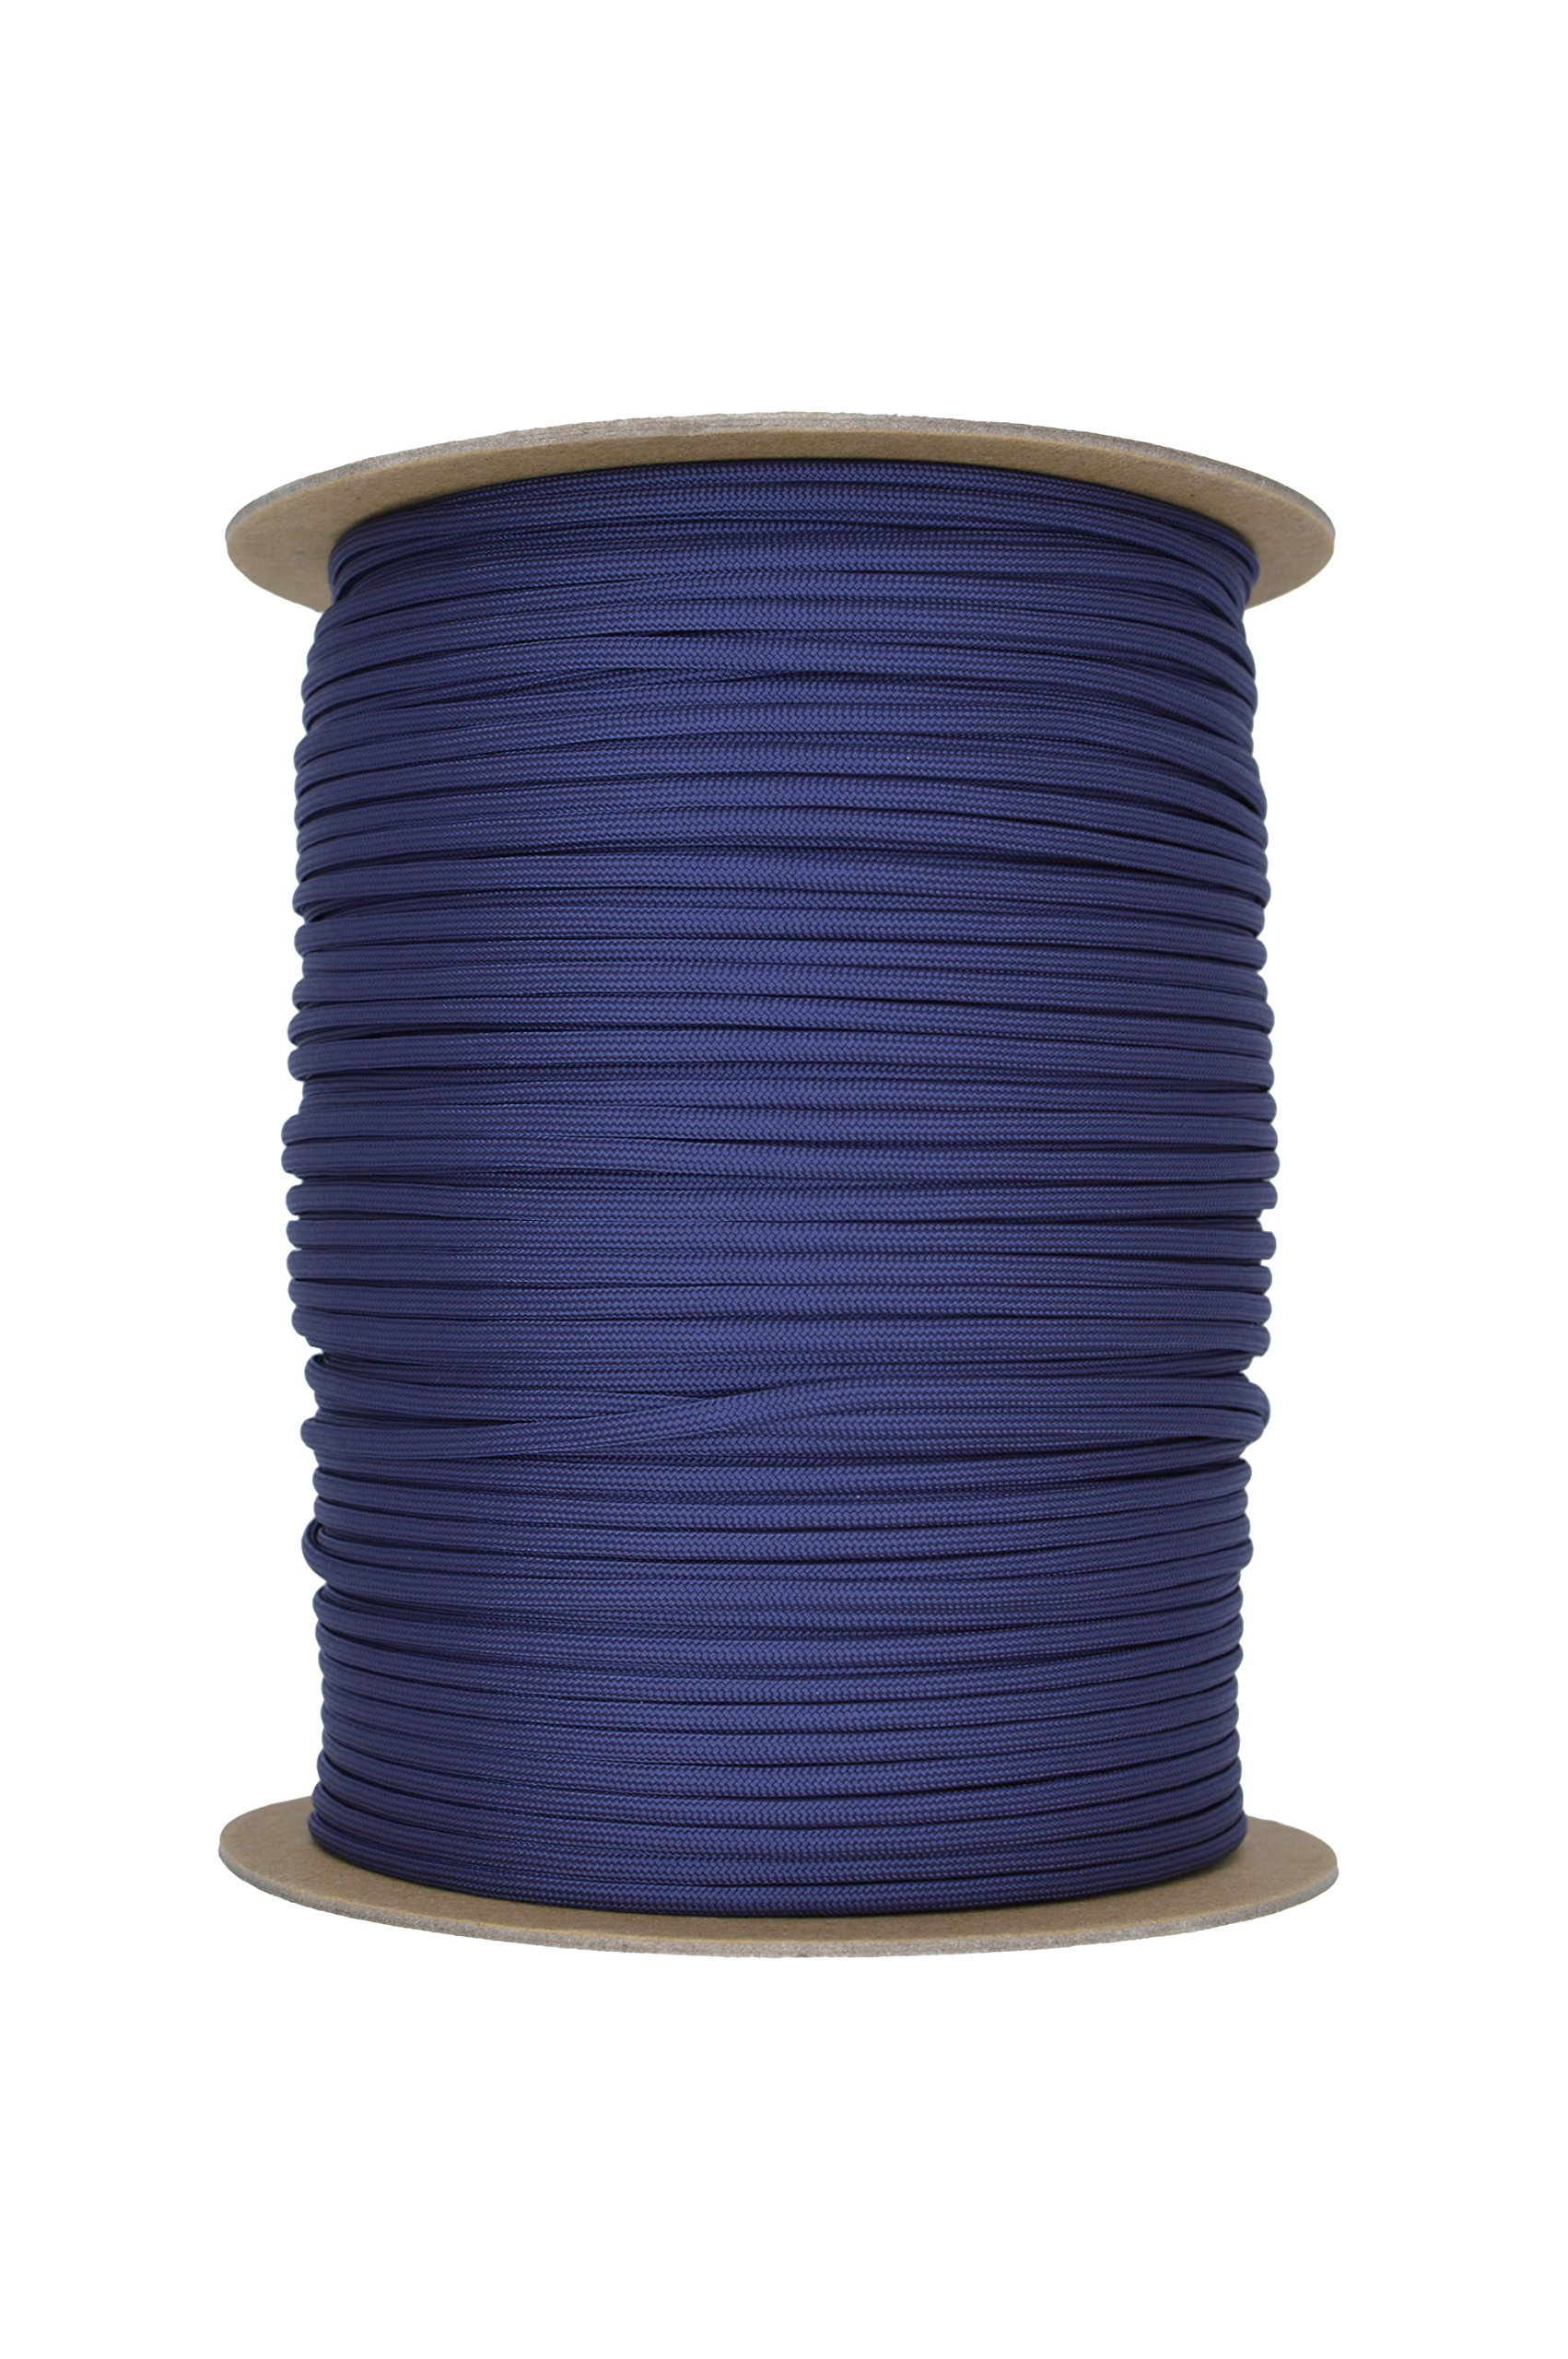 Paracord Rope 550 Type III Paracord - Parachute Cord - 550lb Tensile Strength - 100% Nylon - Made In The USA (Navy Blue, 50 Feet) by Paracord Rope (Image #2)